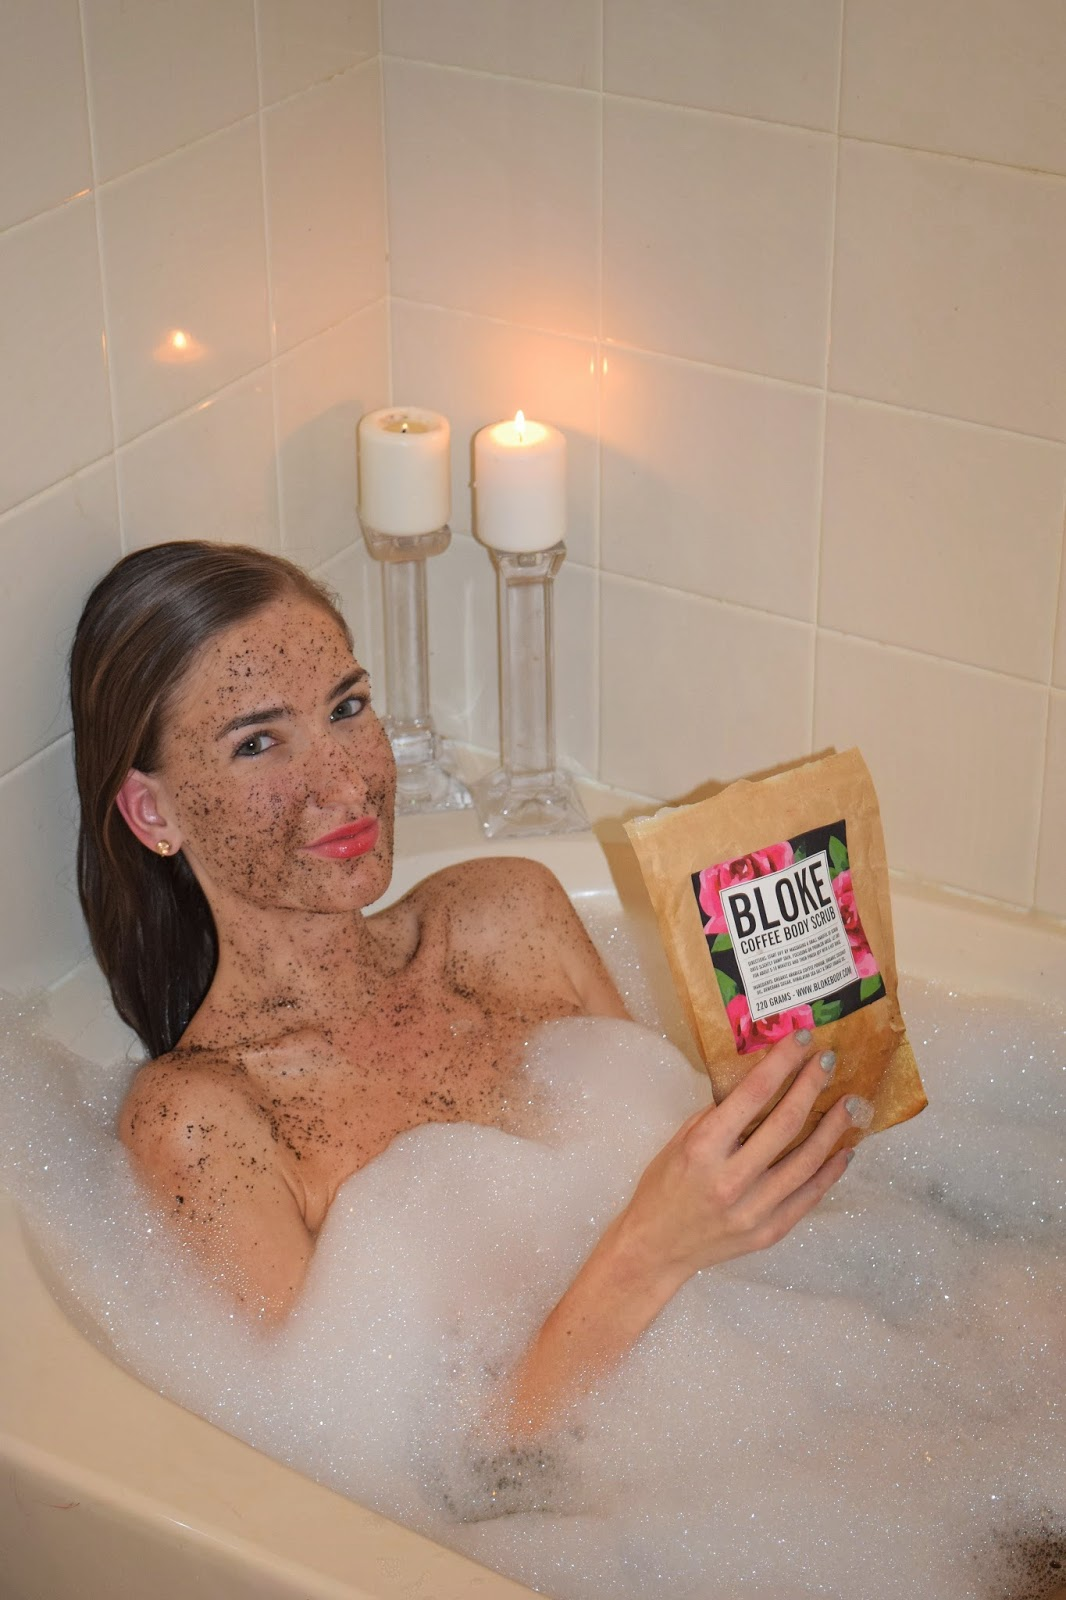 Using Bloke Coffee Body Scrub, Organic Body Scrub